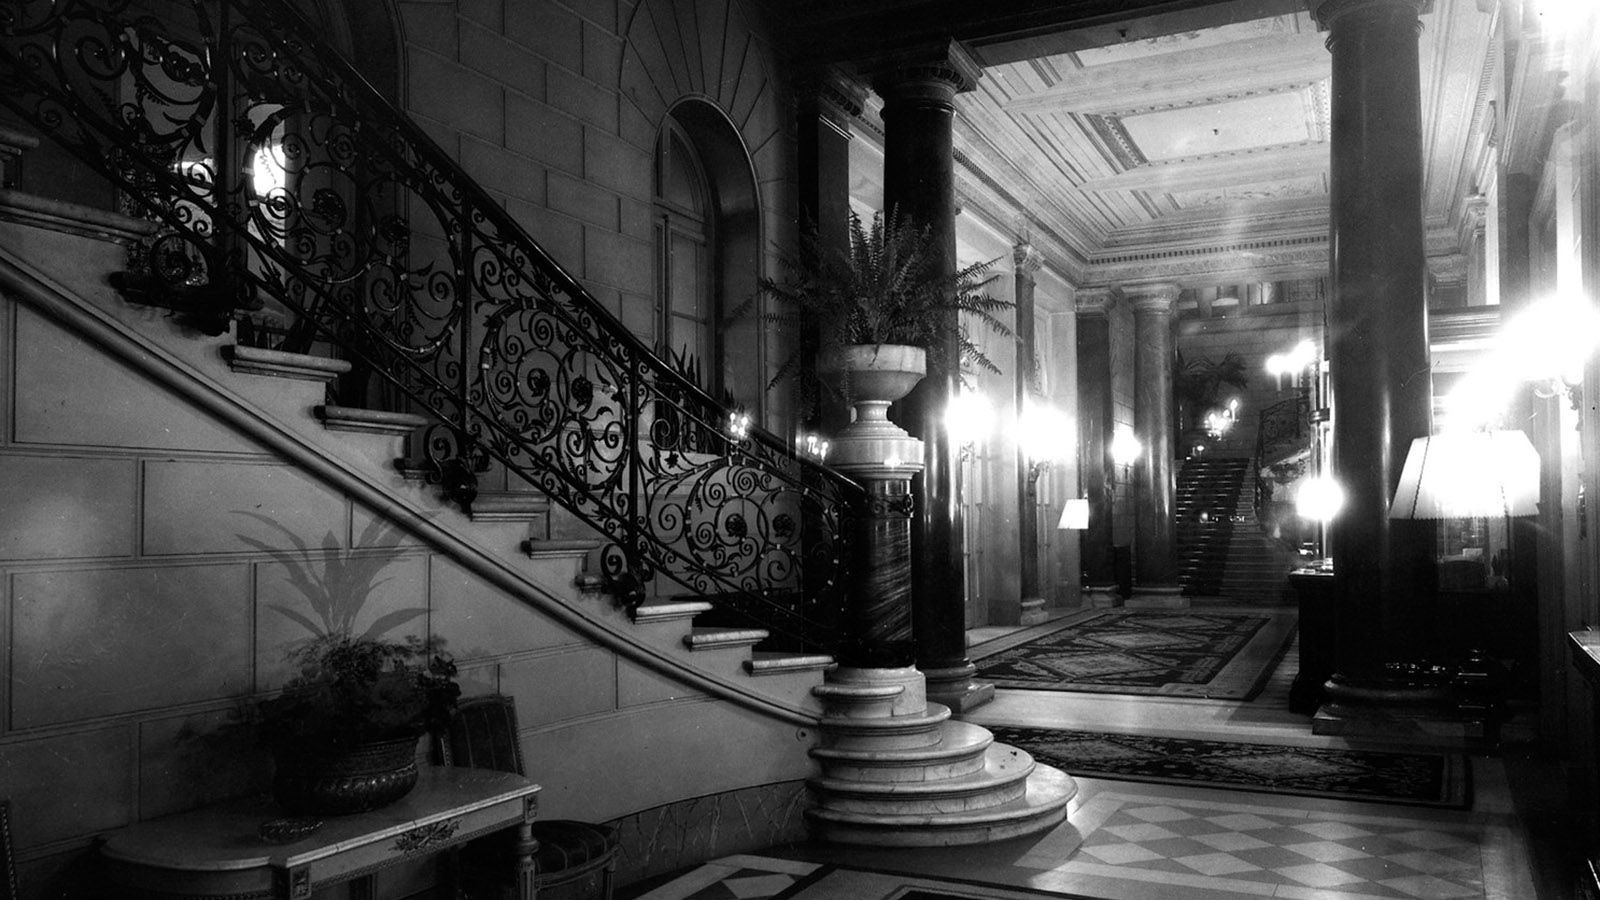 The St. Regis historic Staircase